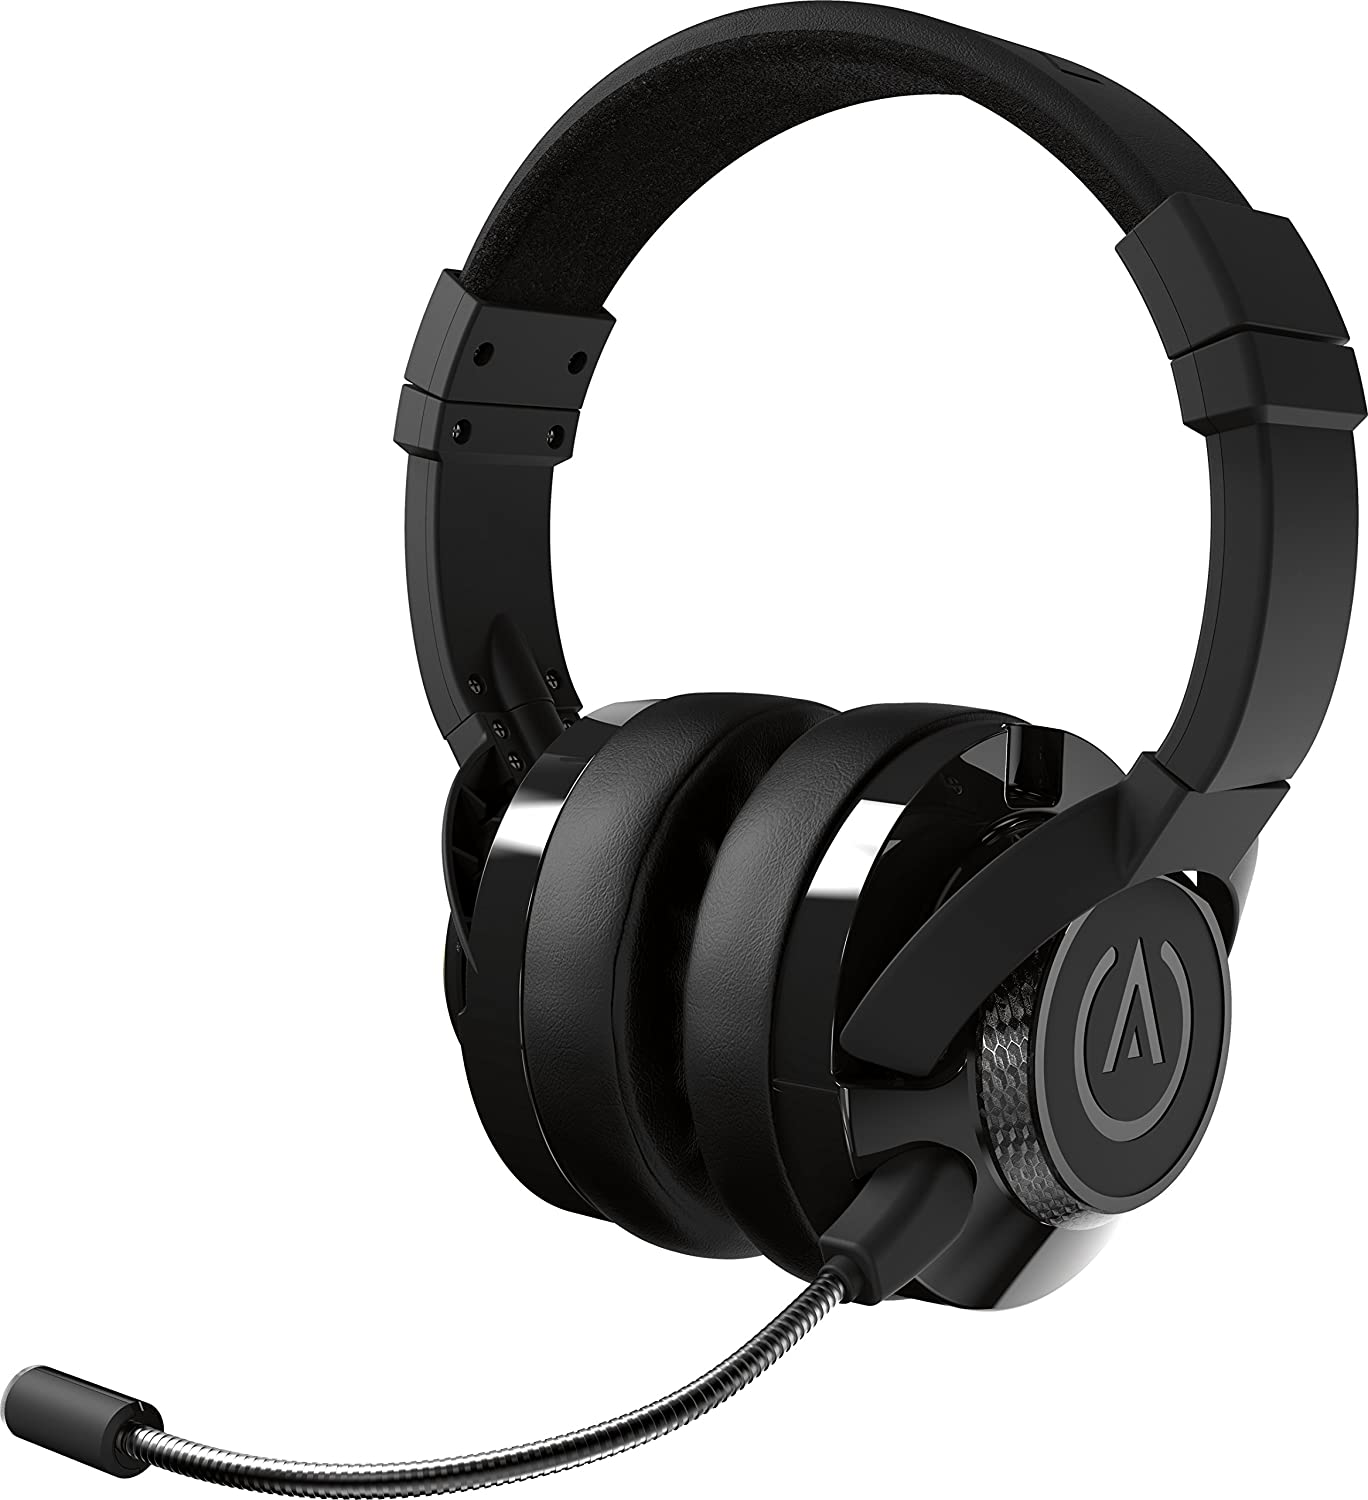 PowerA Fusion Auriculares Gaming con Micrófono Desmontable y Cable - Compatibles con PlayStation 4, Xbox (One, One X, One S, 360), Nintendo Switch, Mac, Android, IOS - Negro